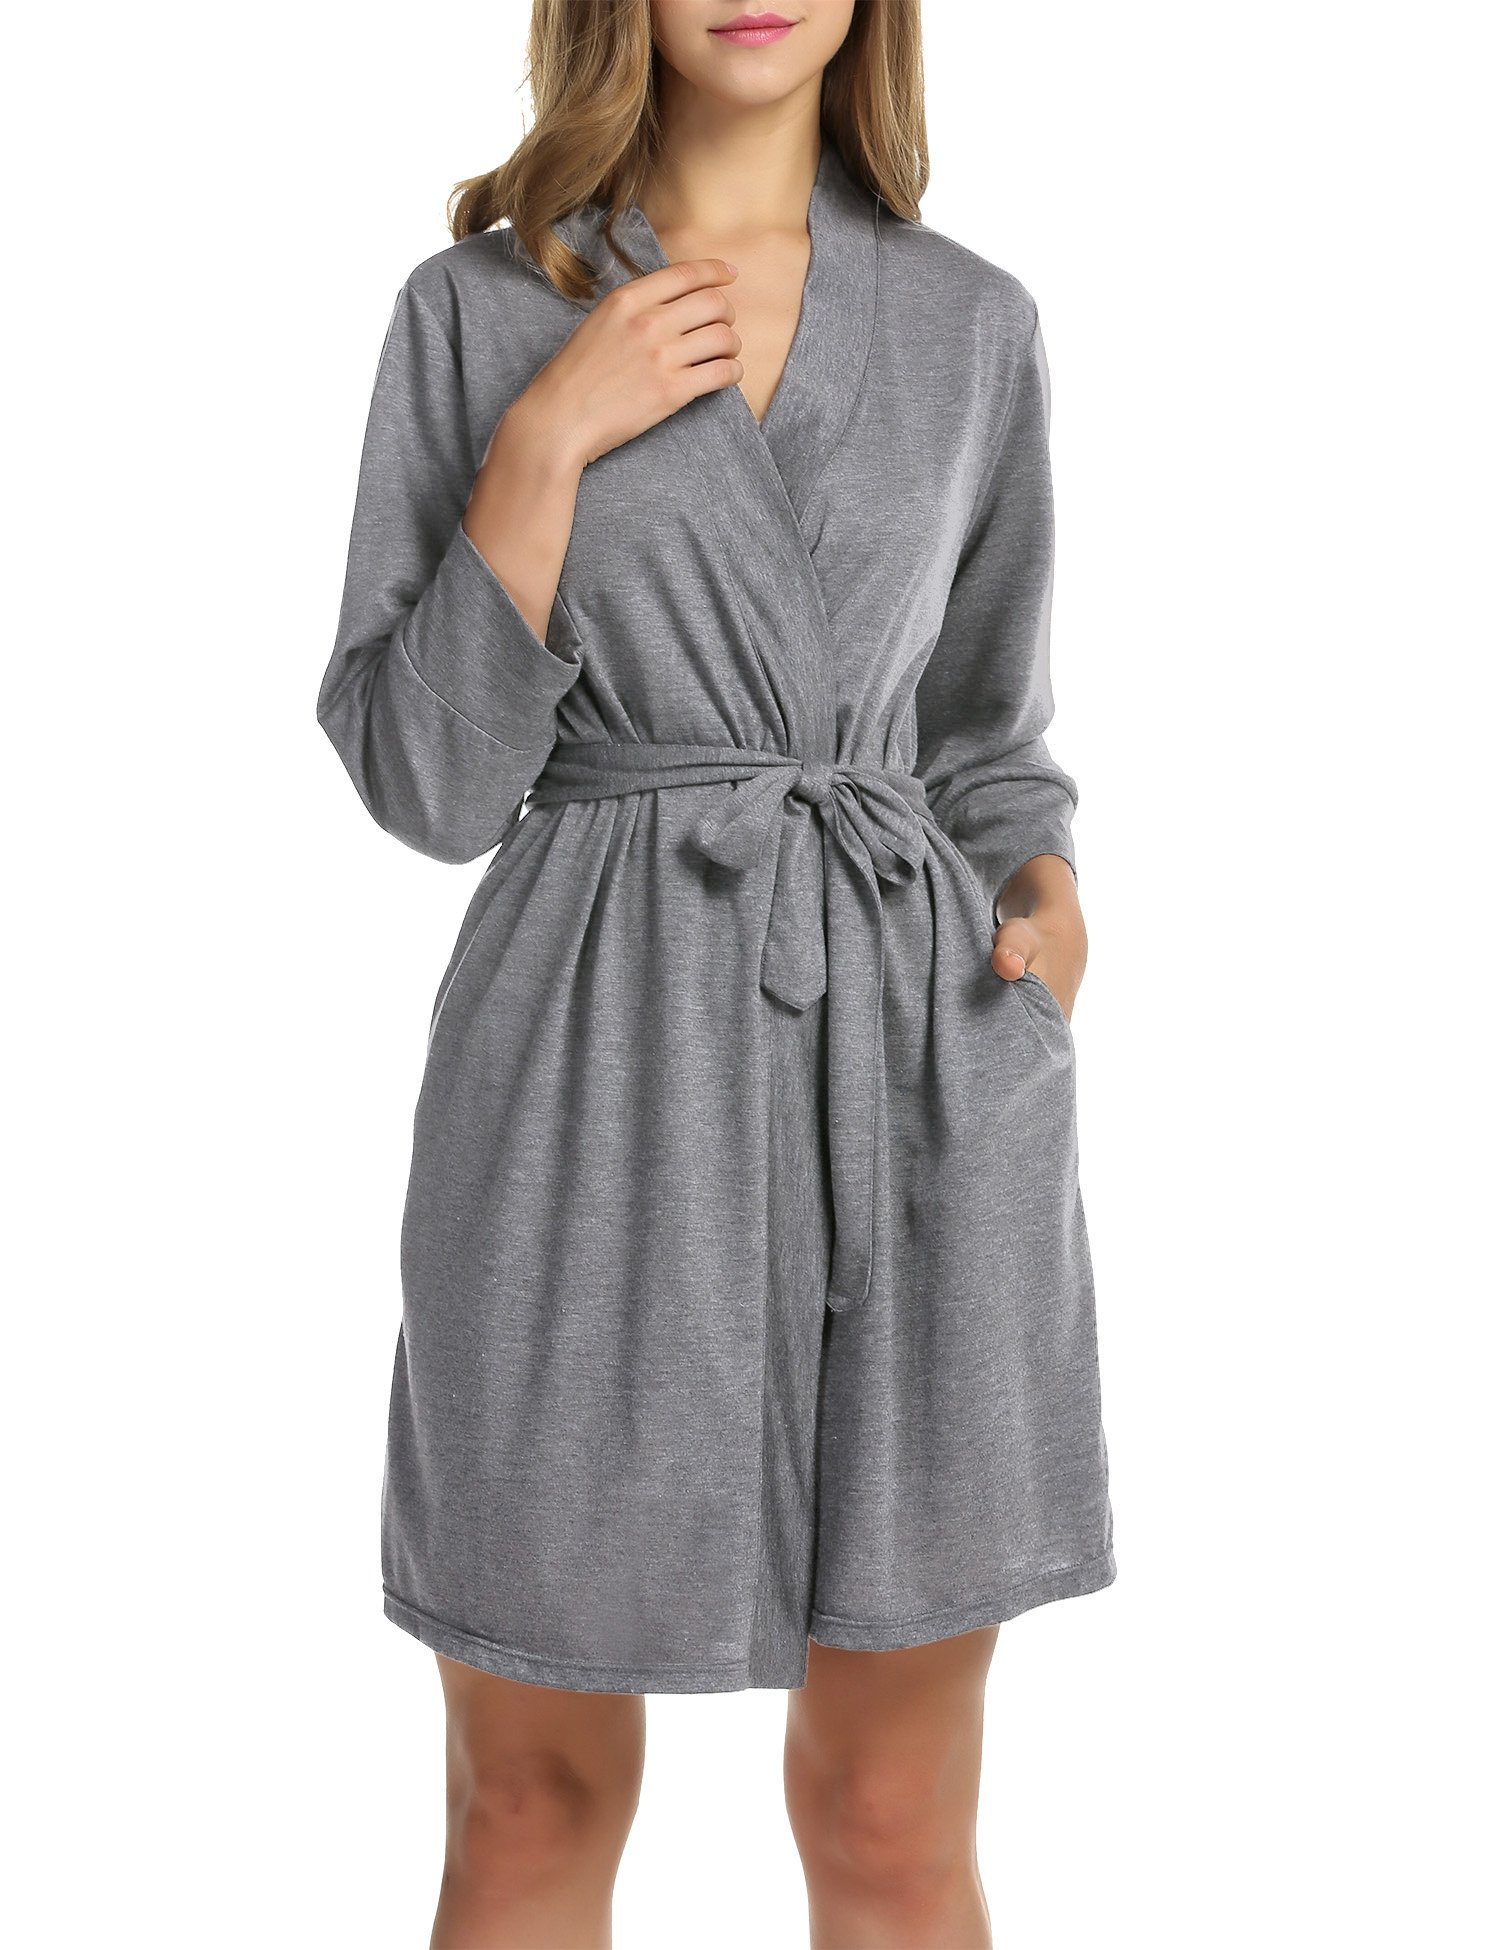 Hotouch Women's Kimono Robes Cotton Pure Colour Short Style with Oblique V-Neck Heather Gray M